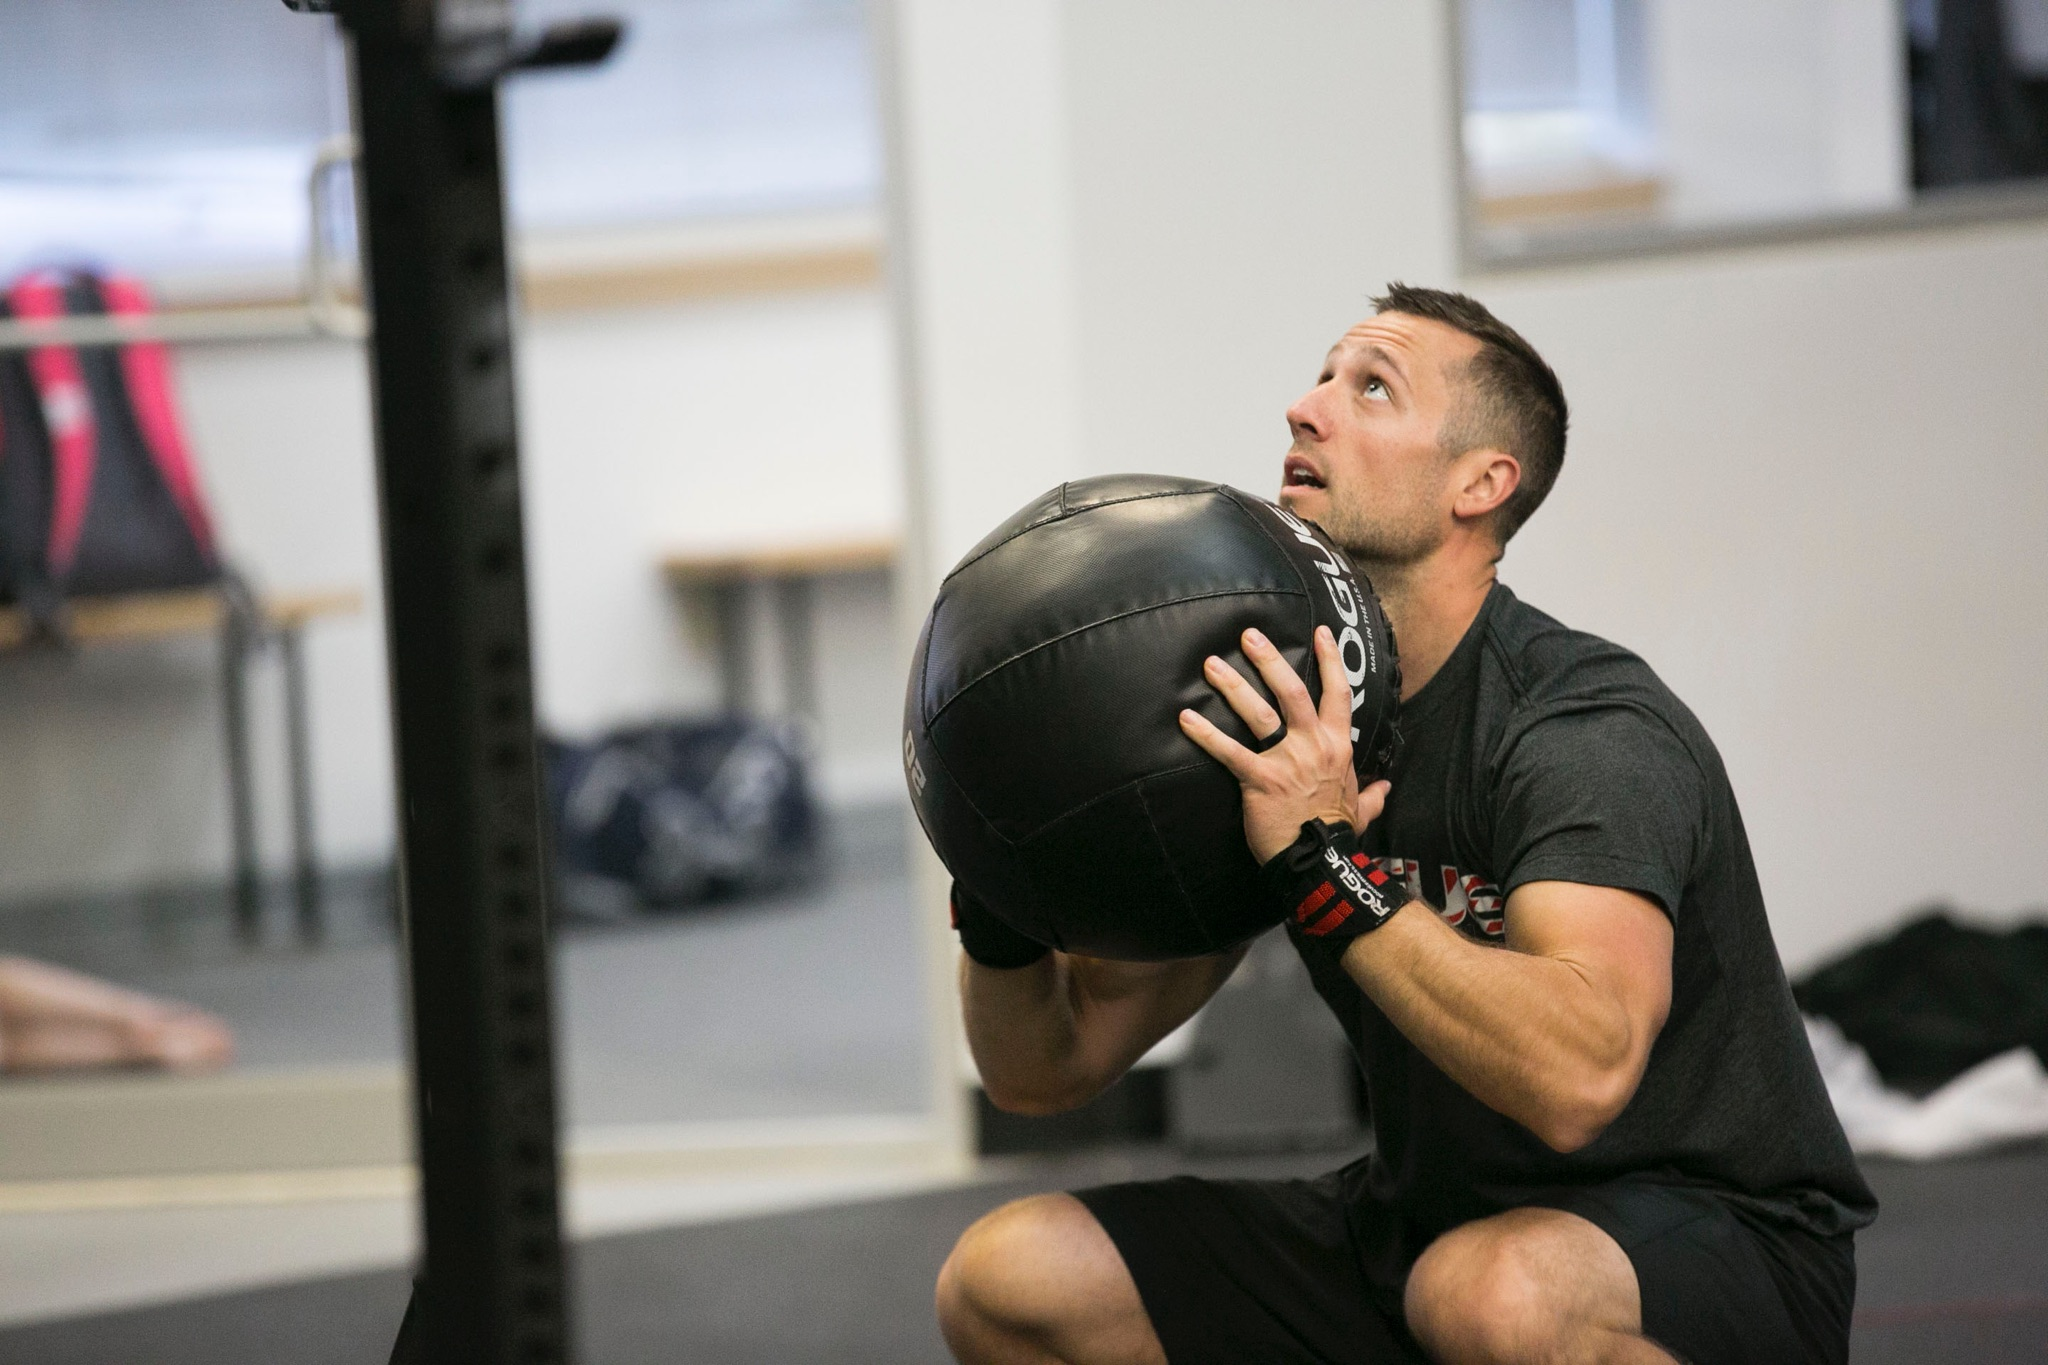 """Coach Corey Sweat not only wins the """"Most Appropriate CrossFit Coach Name"""" award, but it's always been his dream to coach right here at CrossFit Pickerington.  """"From the time I met the owners and members here at CrossFit Pickerington, It has been a goal of mine to observe, listen, and grow as a member to have the opportunity to be a coach at THIS gym,"""" he says. """"I want the members to know I am truly excited and honored to be called one of their coaches.""""  Corey is also a full-time teacher, so coaching is a natural extension of his love of learning and teaching. """"I enjoy educating myself first, then sharing this with like-minded individuals with a passion for excellence,"""" he says.  Two things you'll hear from Corey in his classes are """"Pay the man"""" and """"But did you die?""""  CERTIFICATIONS: CrossFit Level 1"""